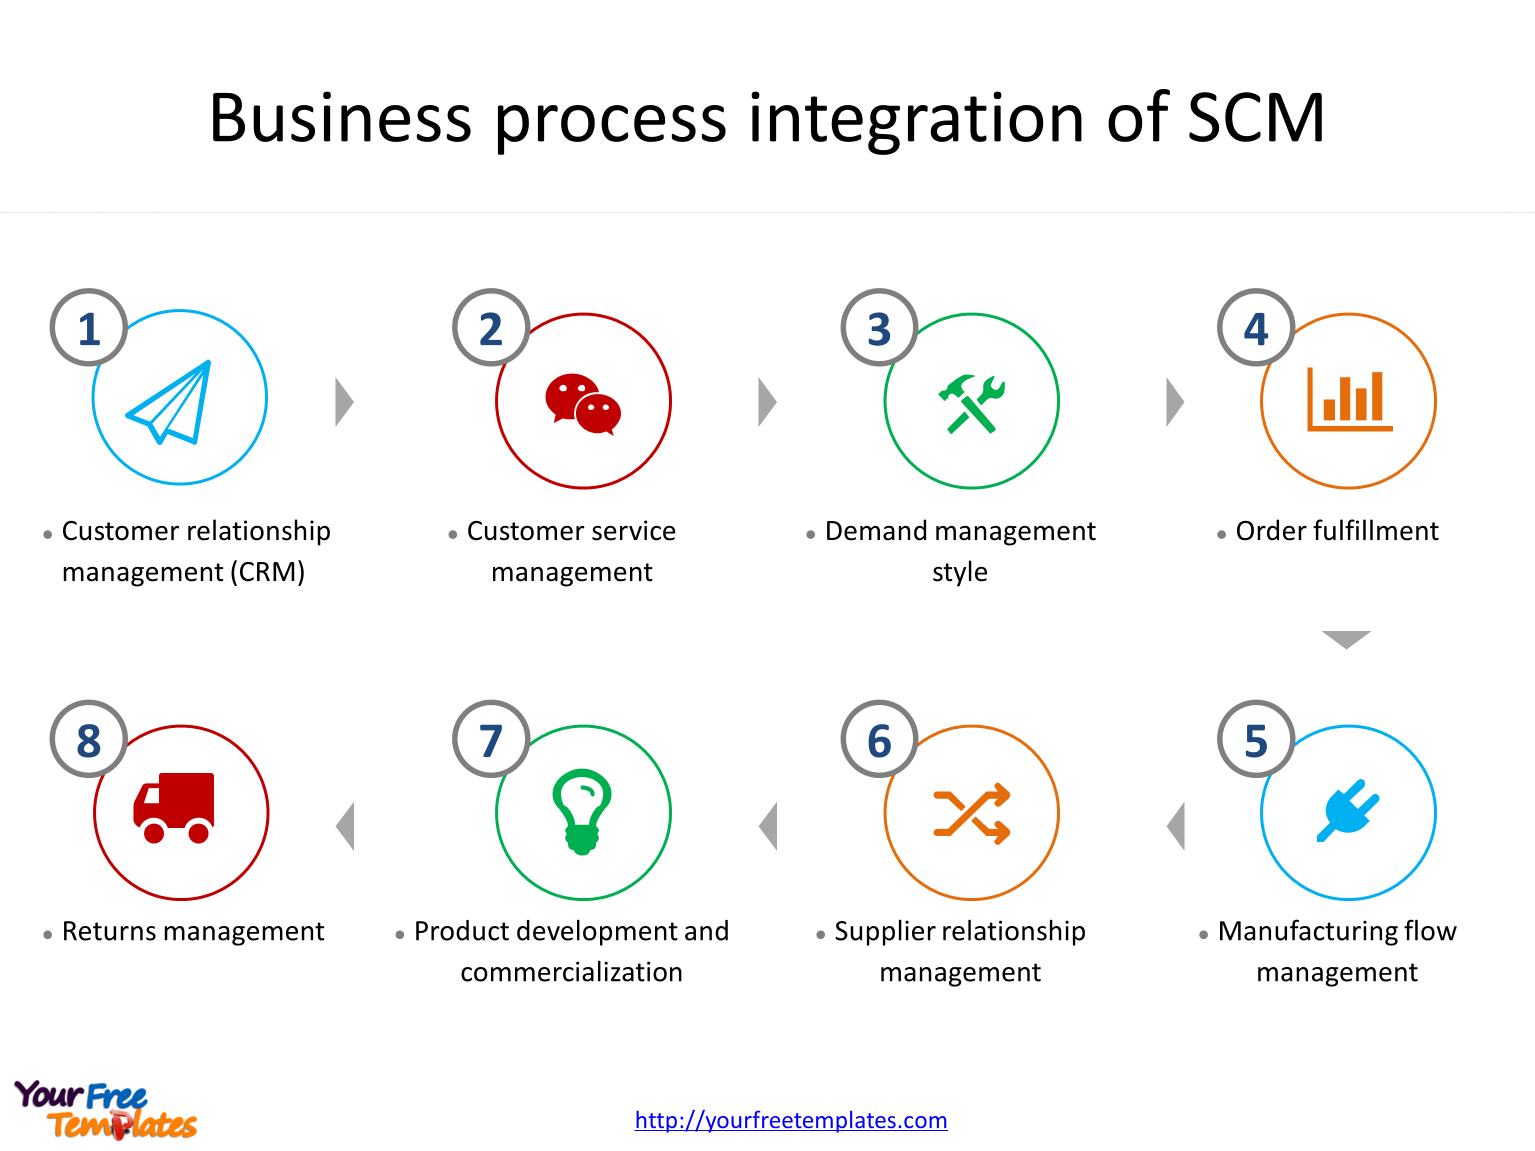 Supply chain management with Business process integration.